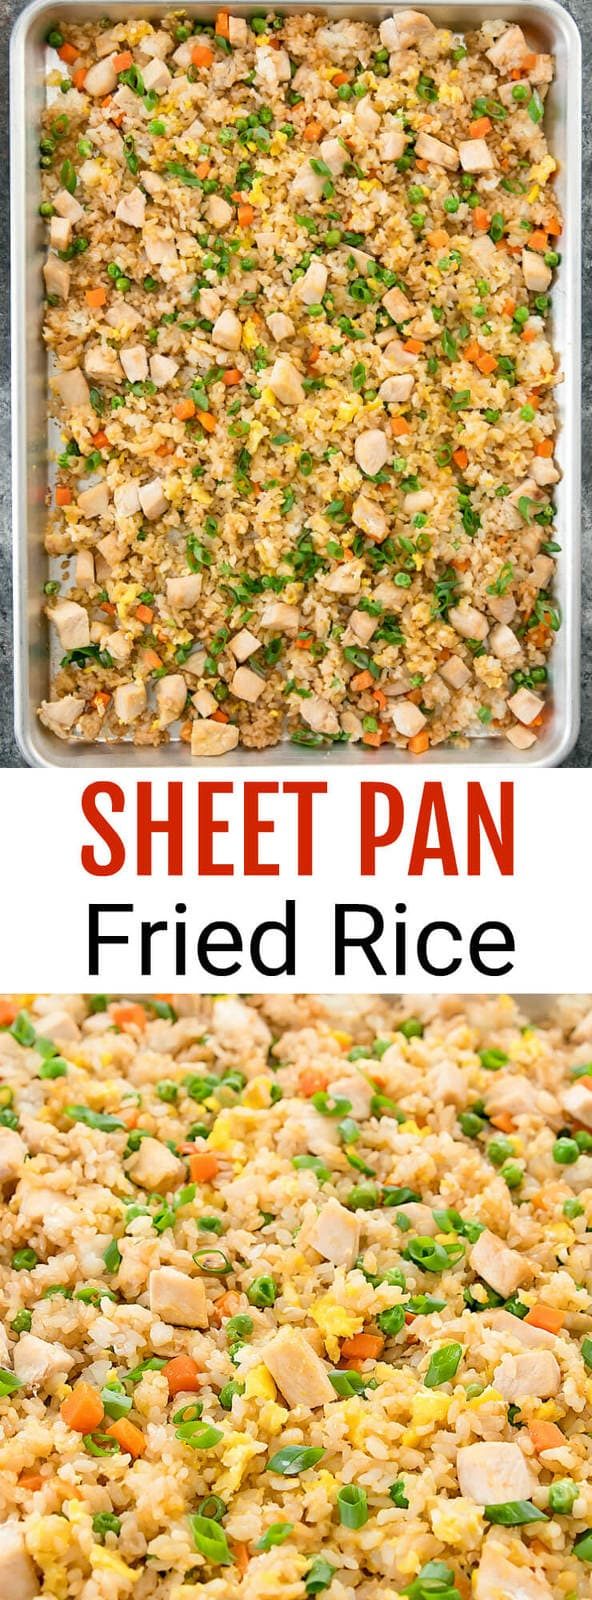 Sheet Pan Fried Rice. A healthier baked fried rice that cooks on a single sheet pan.